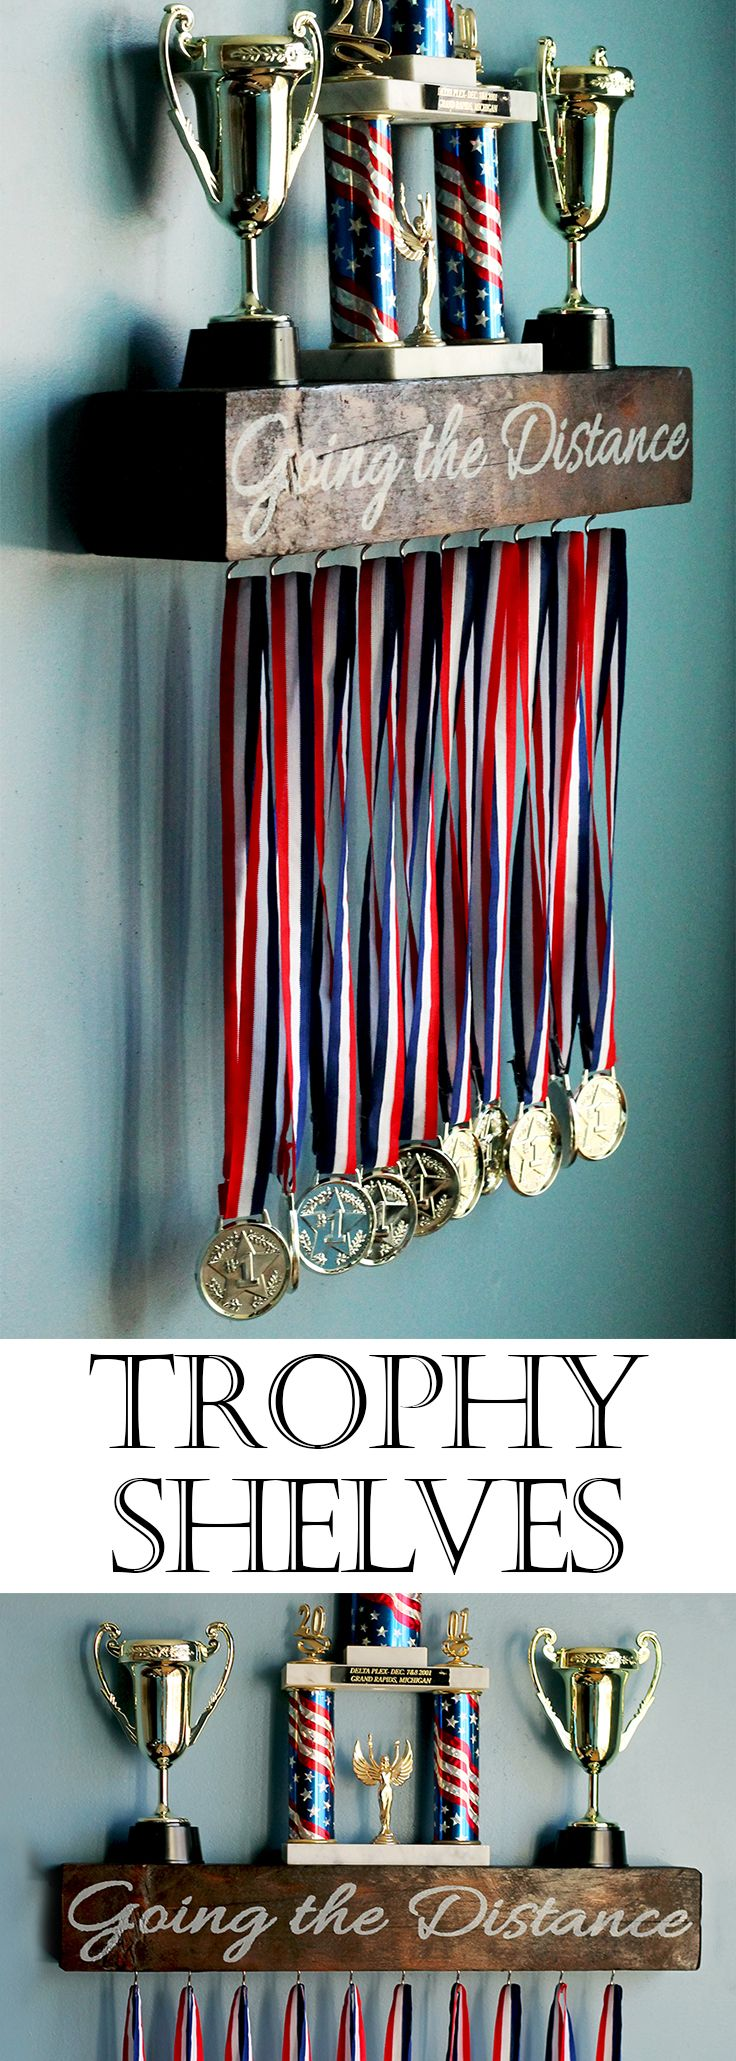 - Order Details - Description - Specs - FREE SHIPPING ON ALL TROPHY SHELVES!!! Pricing: See pricing below. [Choose the size to see pricing on different sizes] Turn-Around Time: 10-14 days to manufactu